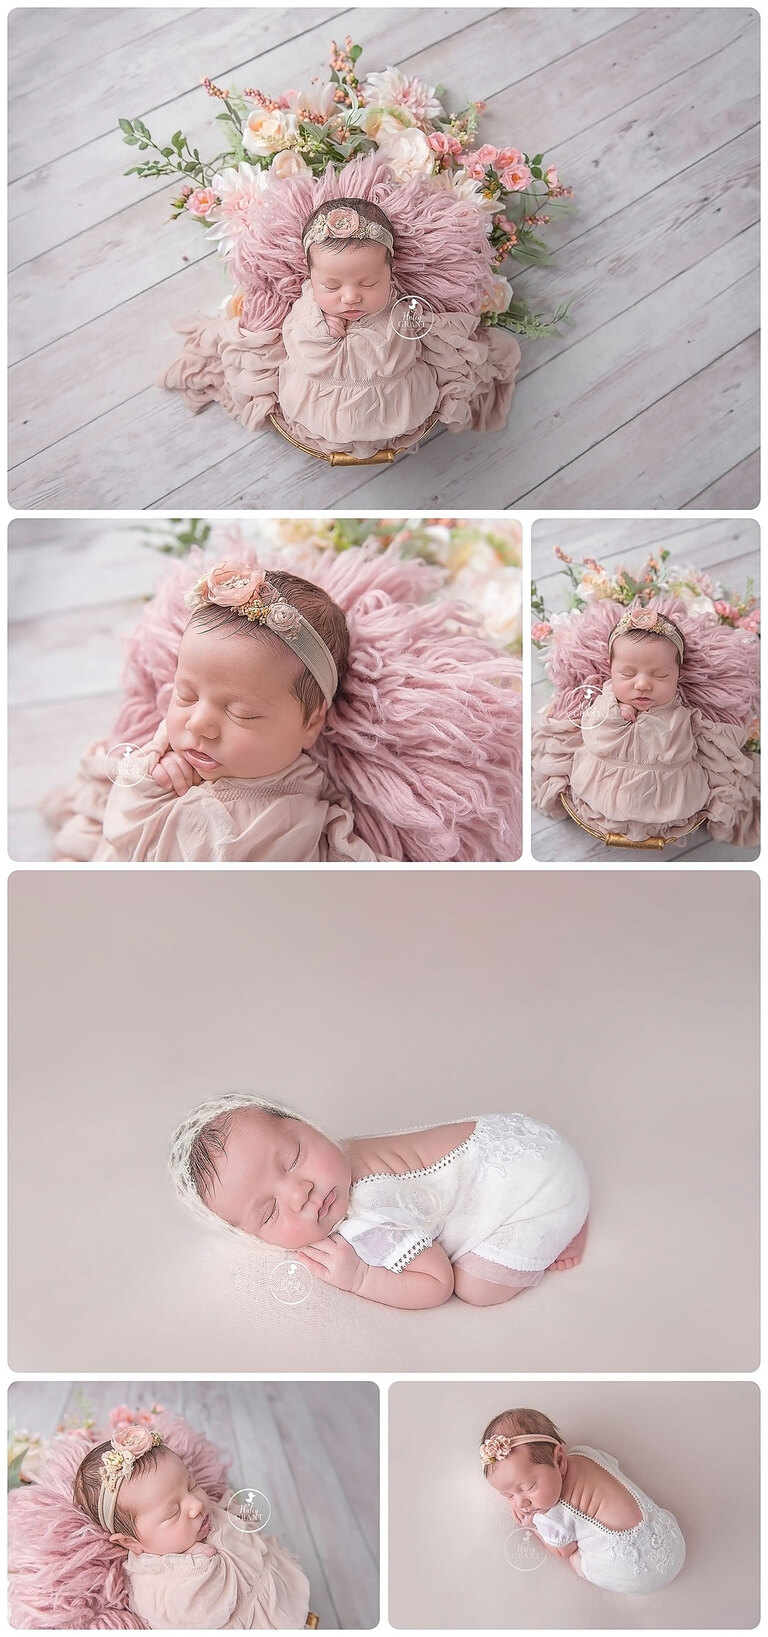 Austin Newborn Baby Photographer Haley offers affordable studio photo sessions that include high resolution digital files and a print release props included